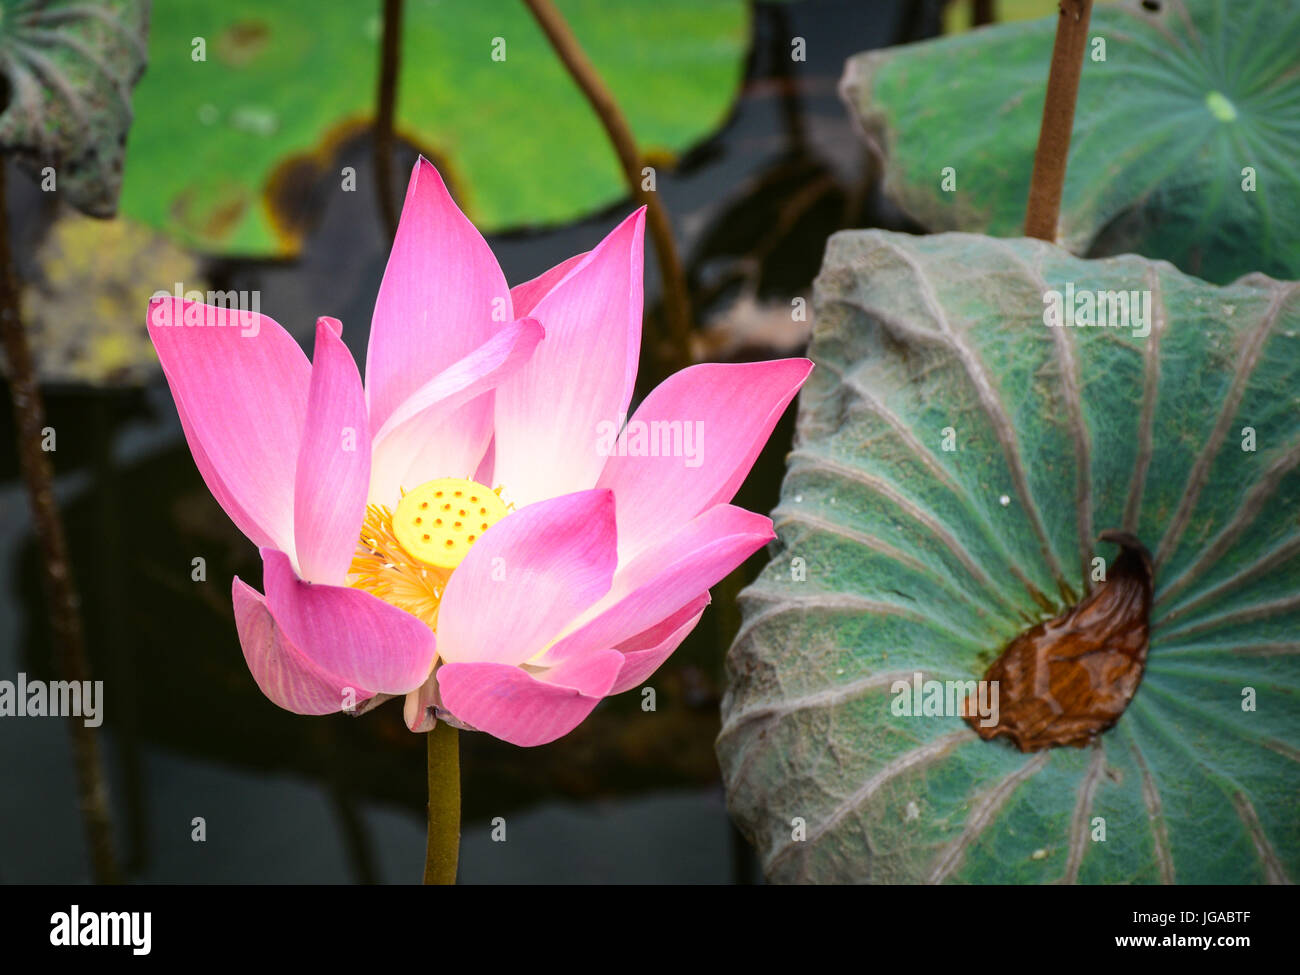 A lotus flower blooming at sunrise in bali indonesia lotus flowers a lotus flower blooming at sunrise in bali indonesia lotus flowers enjoy warm sunlight and are intolerant to cold weather mightylinksfo